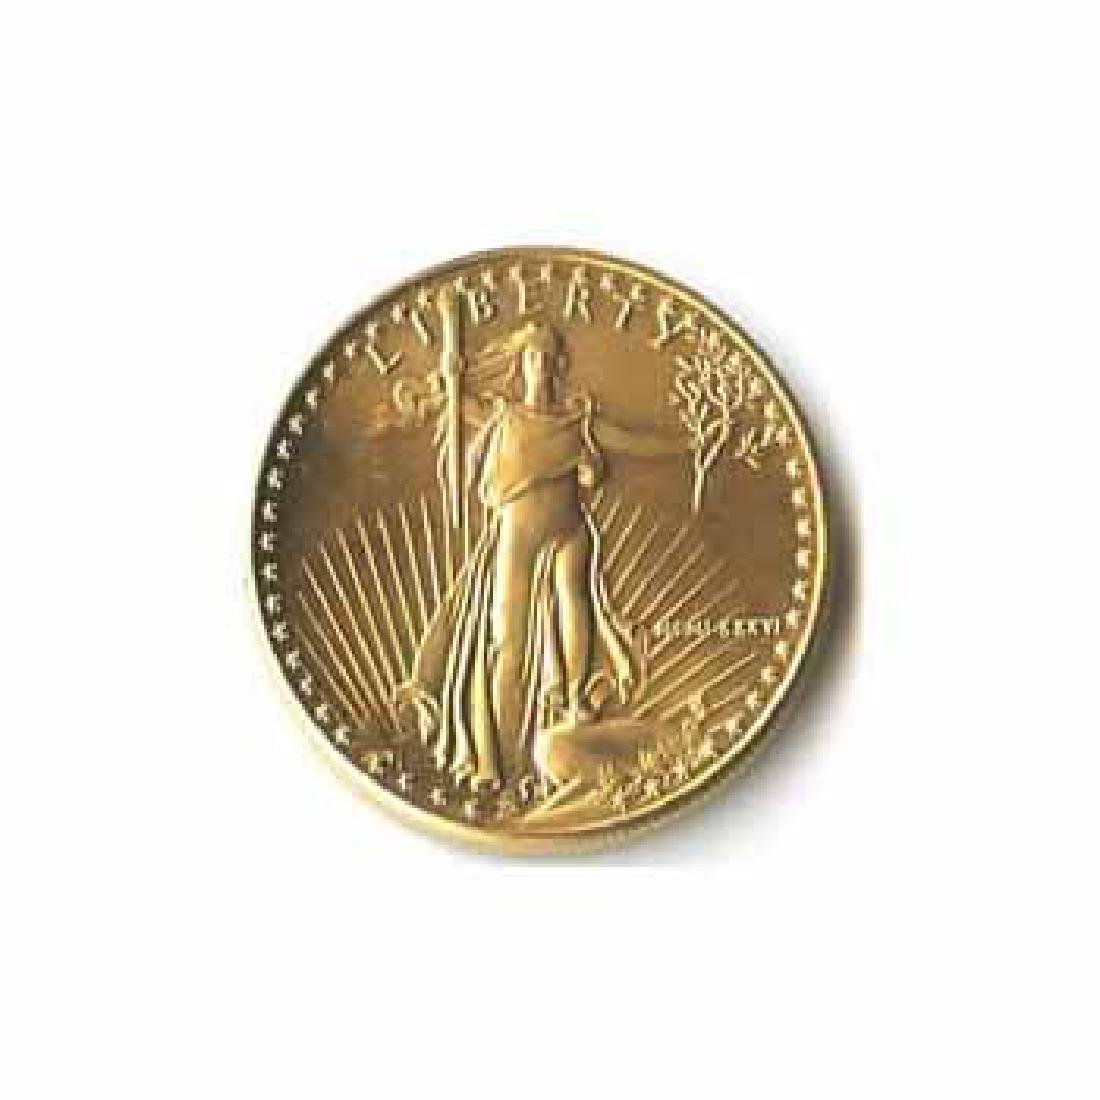 1986 American Gold Eagle 1/10 oz Uncirculated